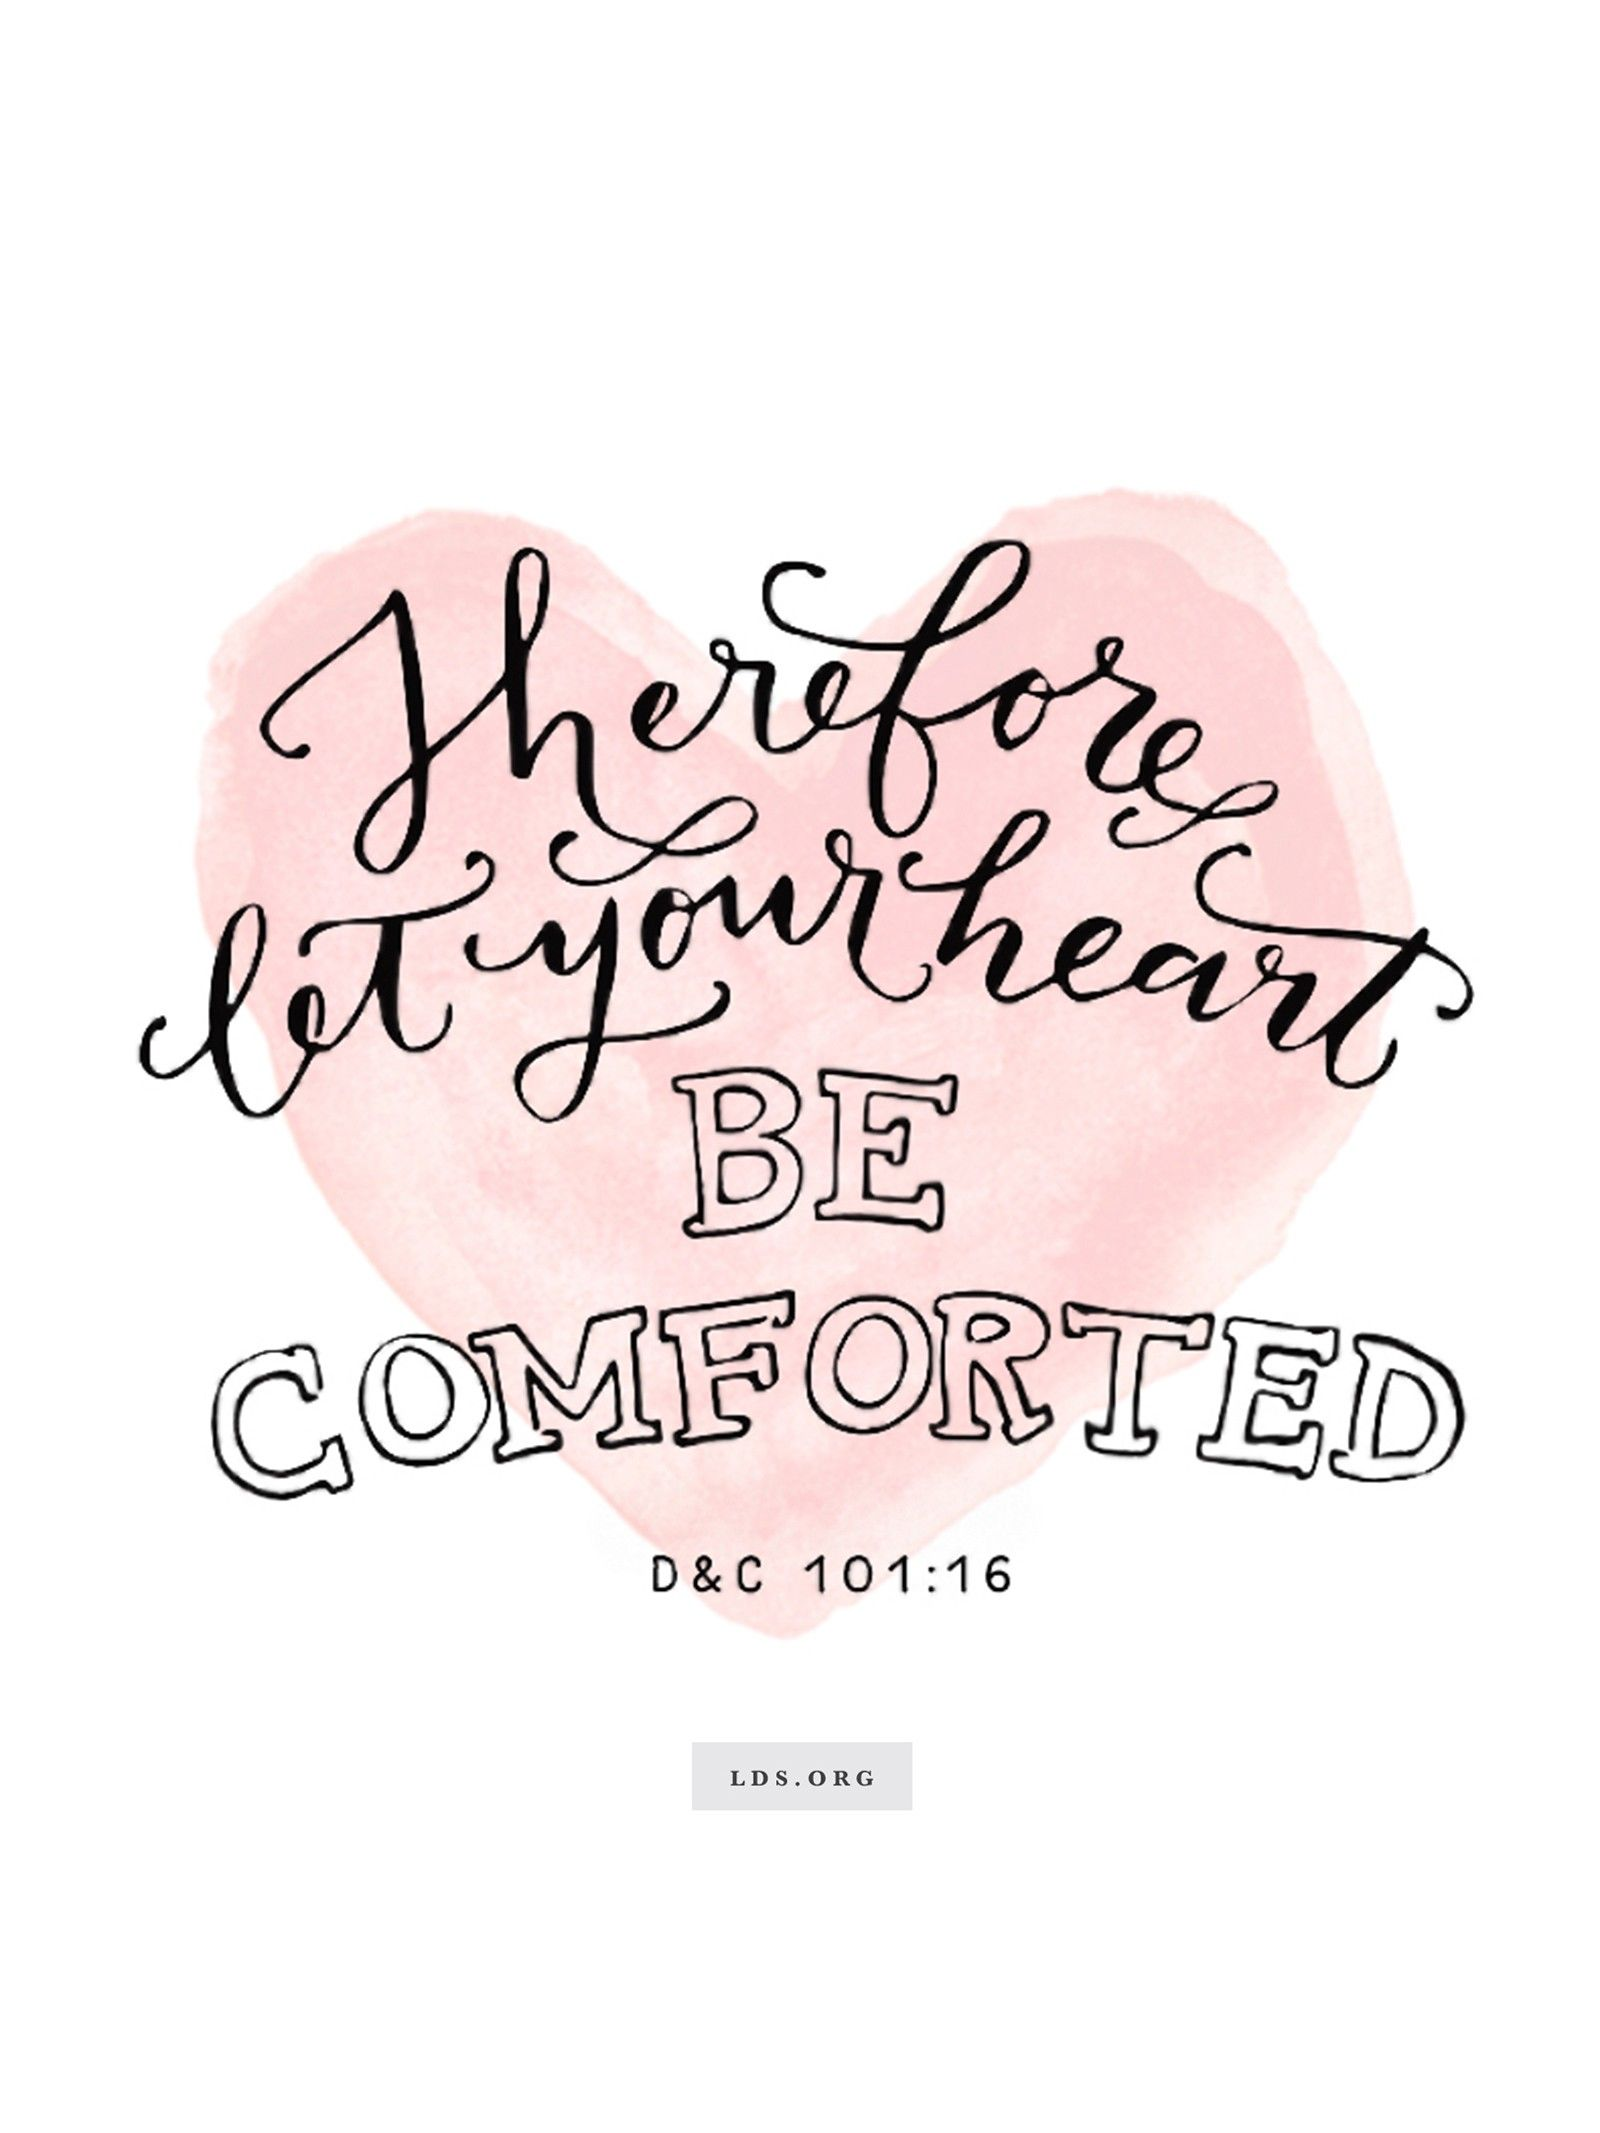 """""""Therefore let your heart be comforted.""""—D&C 101:16. Created by Jenae Nelson."""